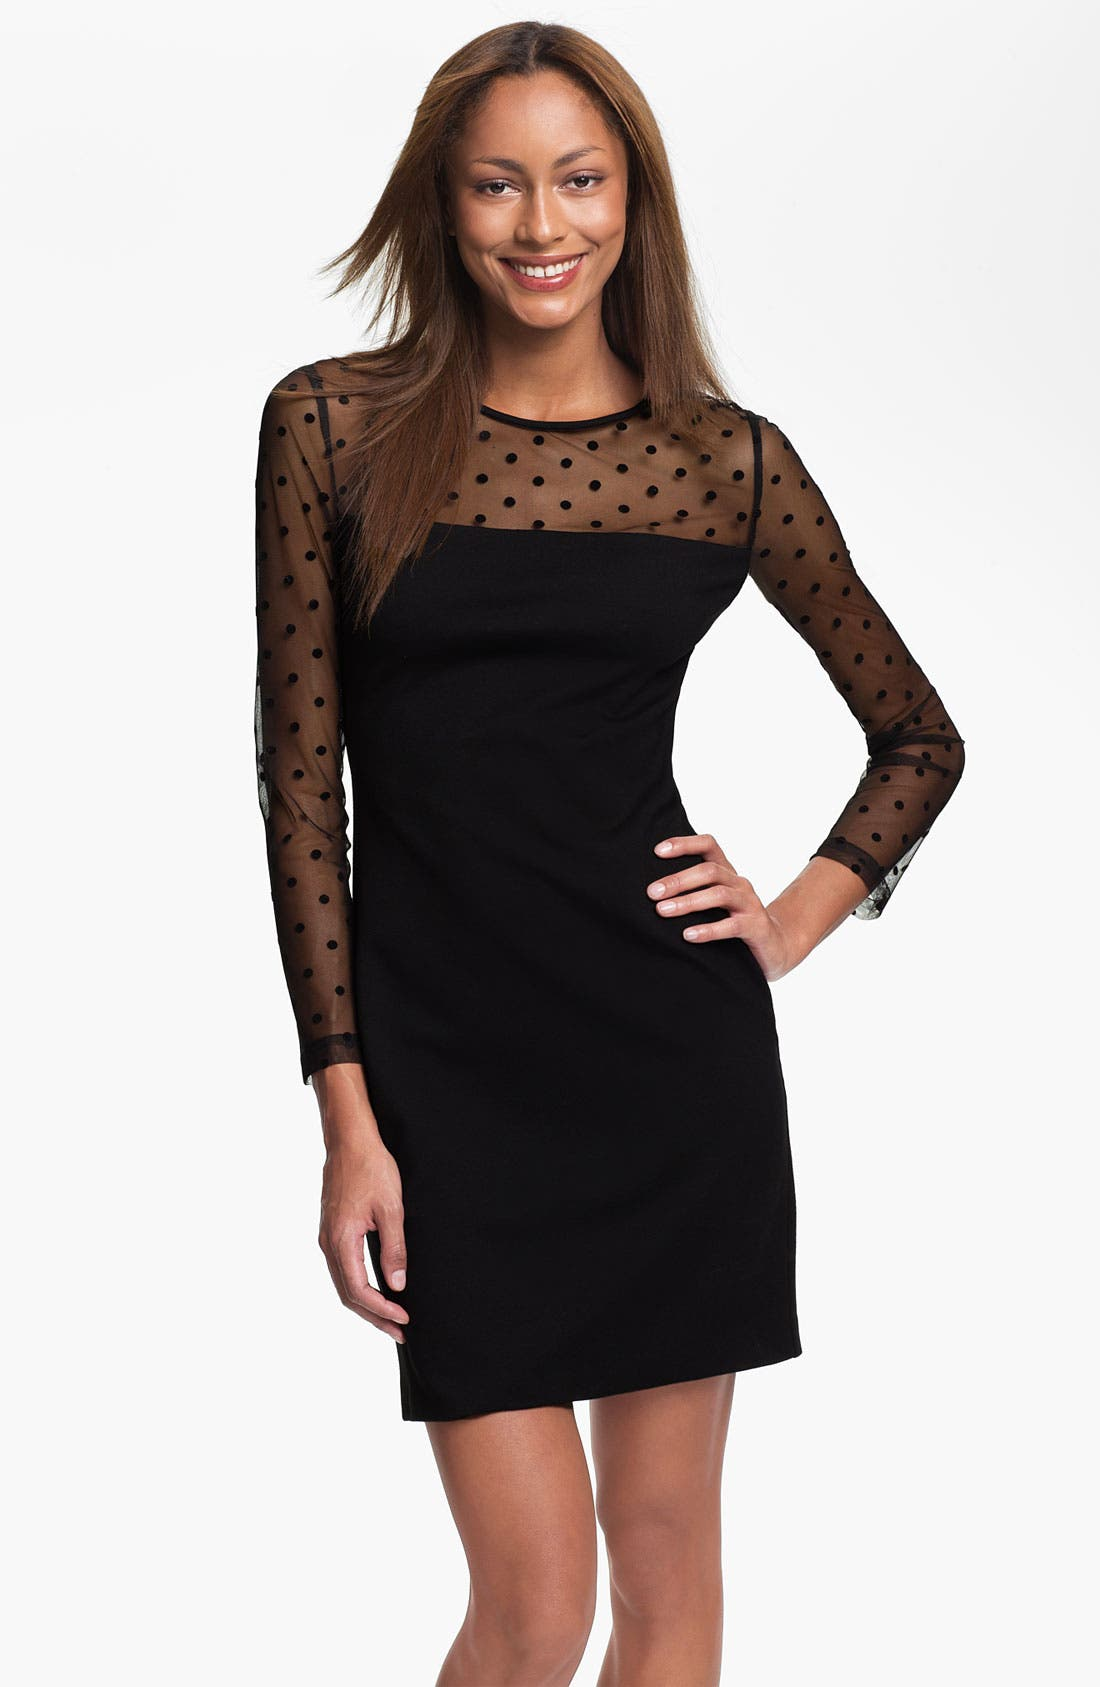 Alternate Image 1 Selected - Vince Camuto Dot Illusion Dress (Online Exclusive)